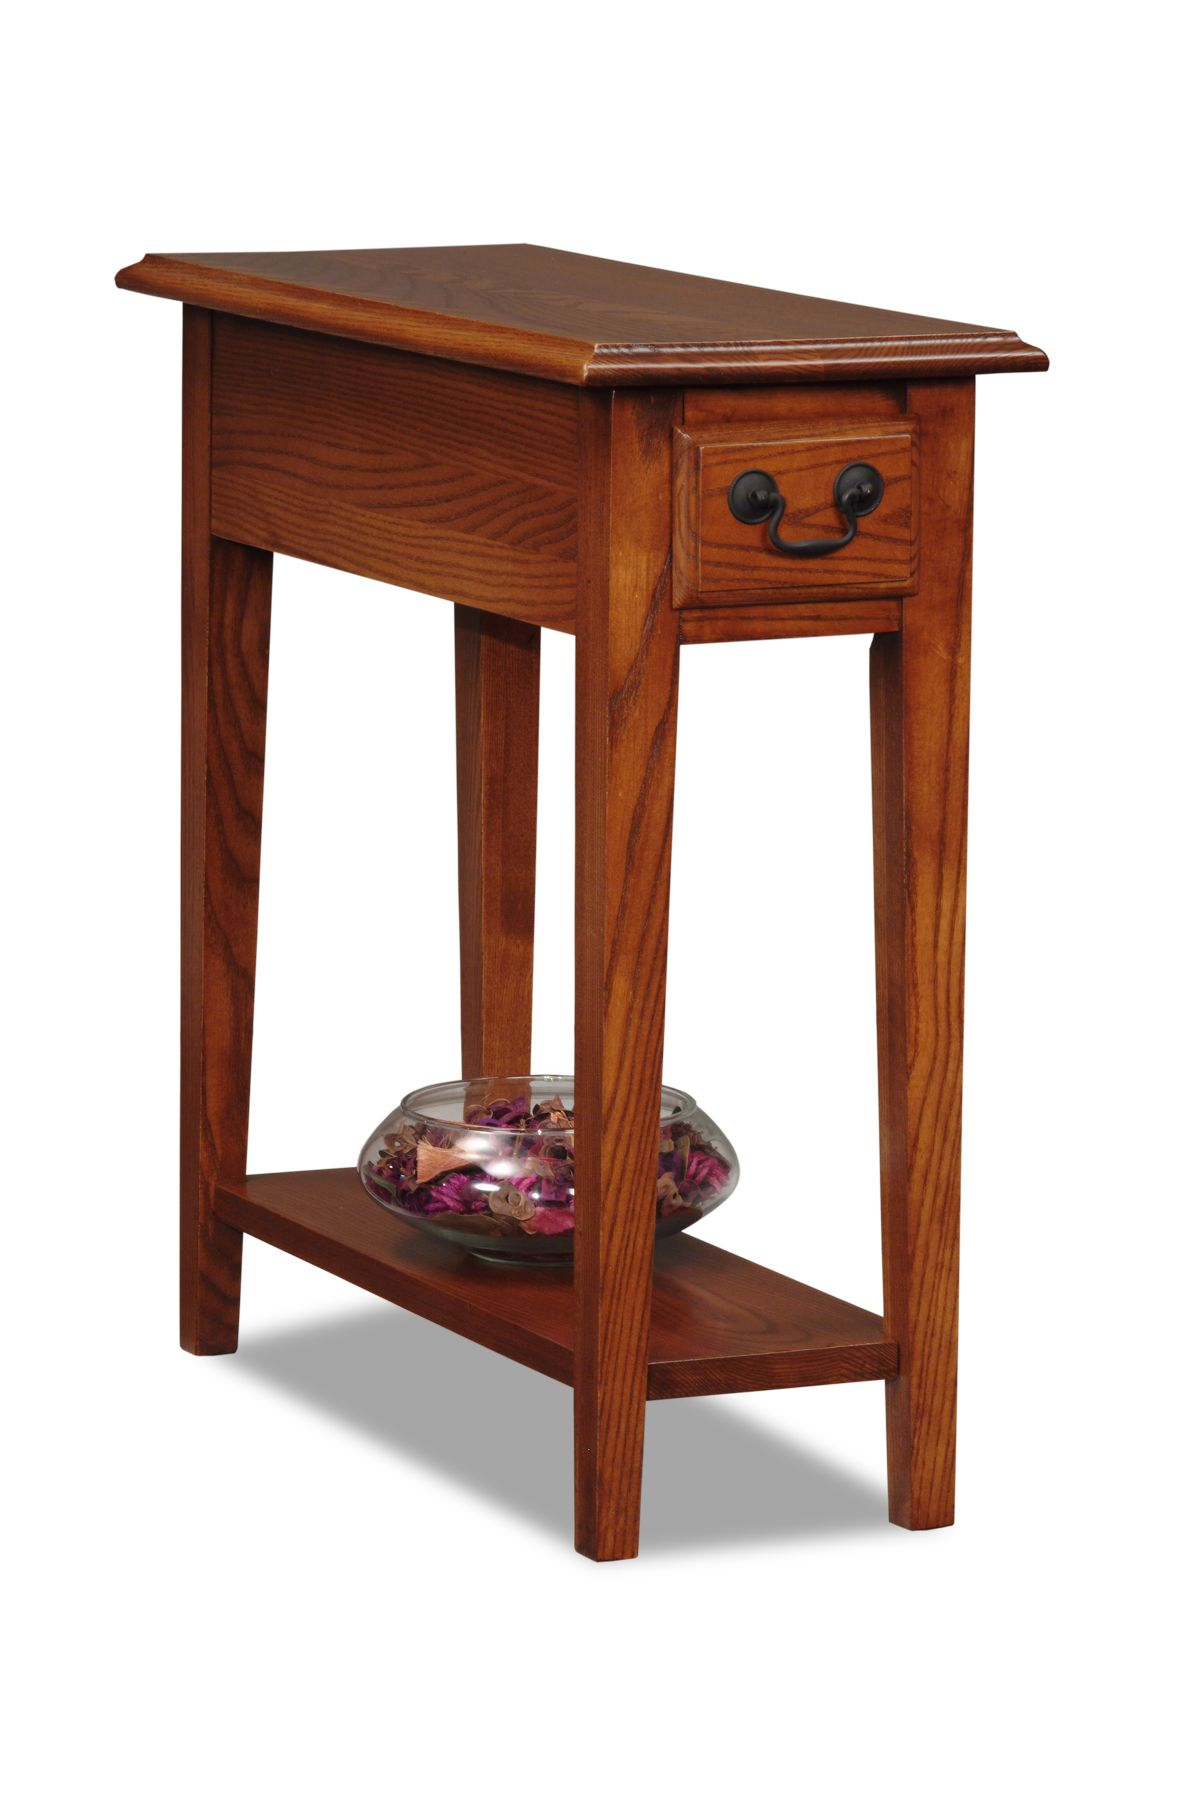 Chic Leick Chairside Small End Table-Medium finish - Home - Furniture - Living small end tables for living room